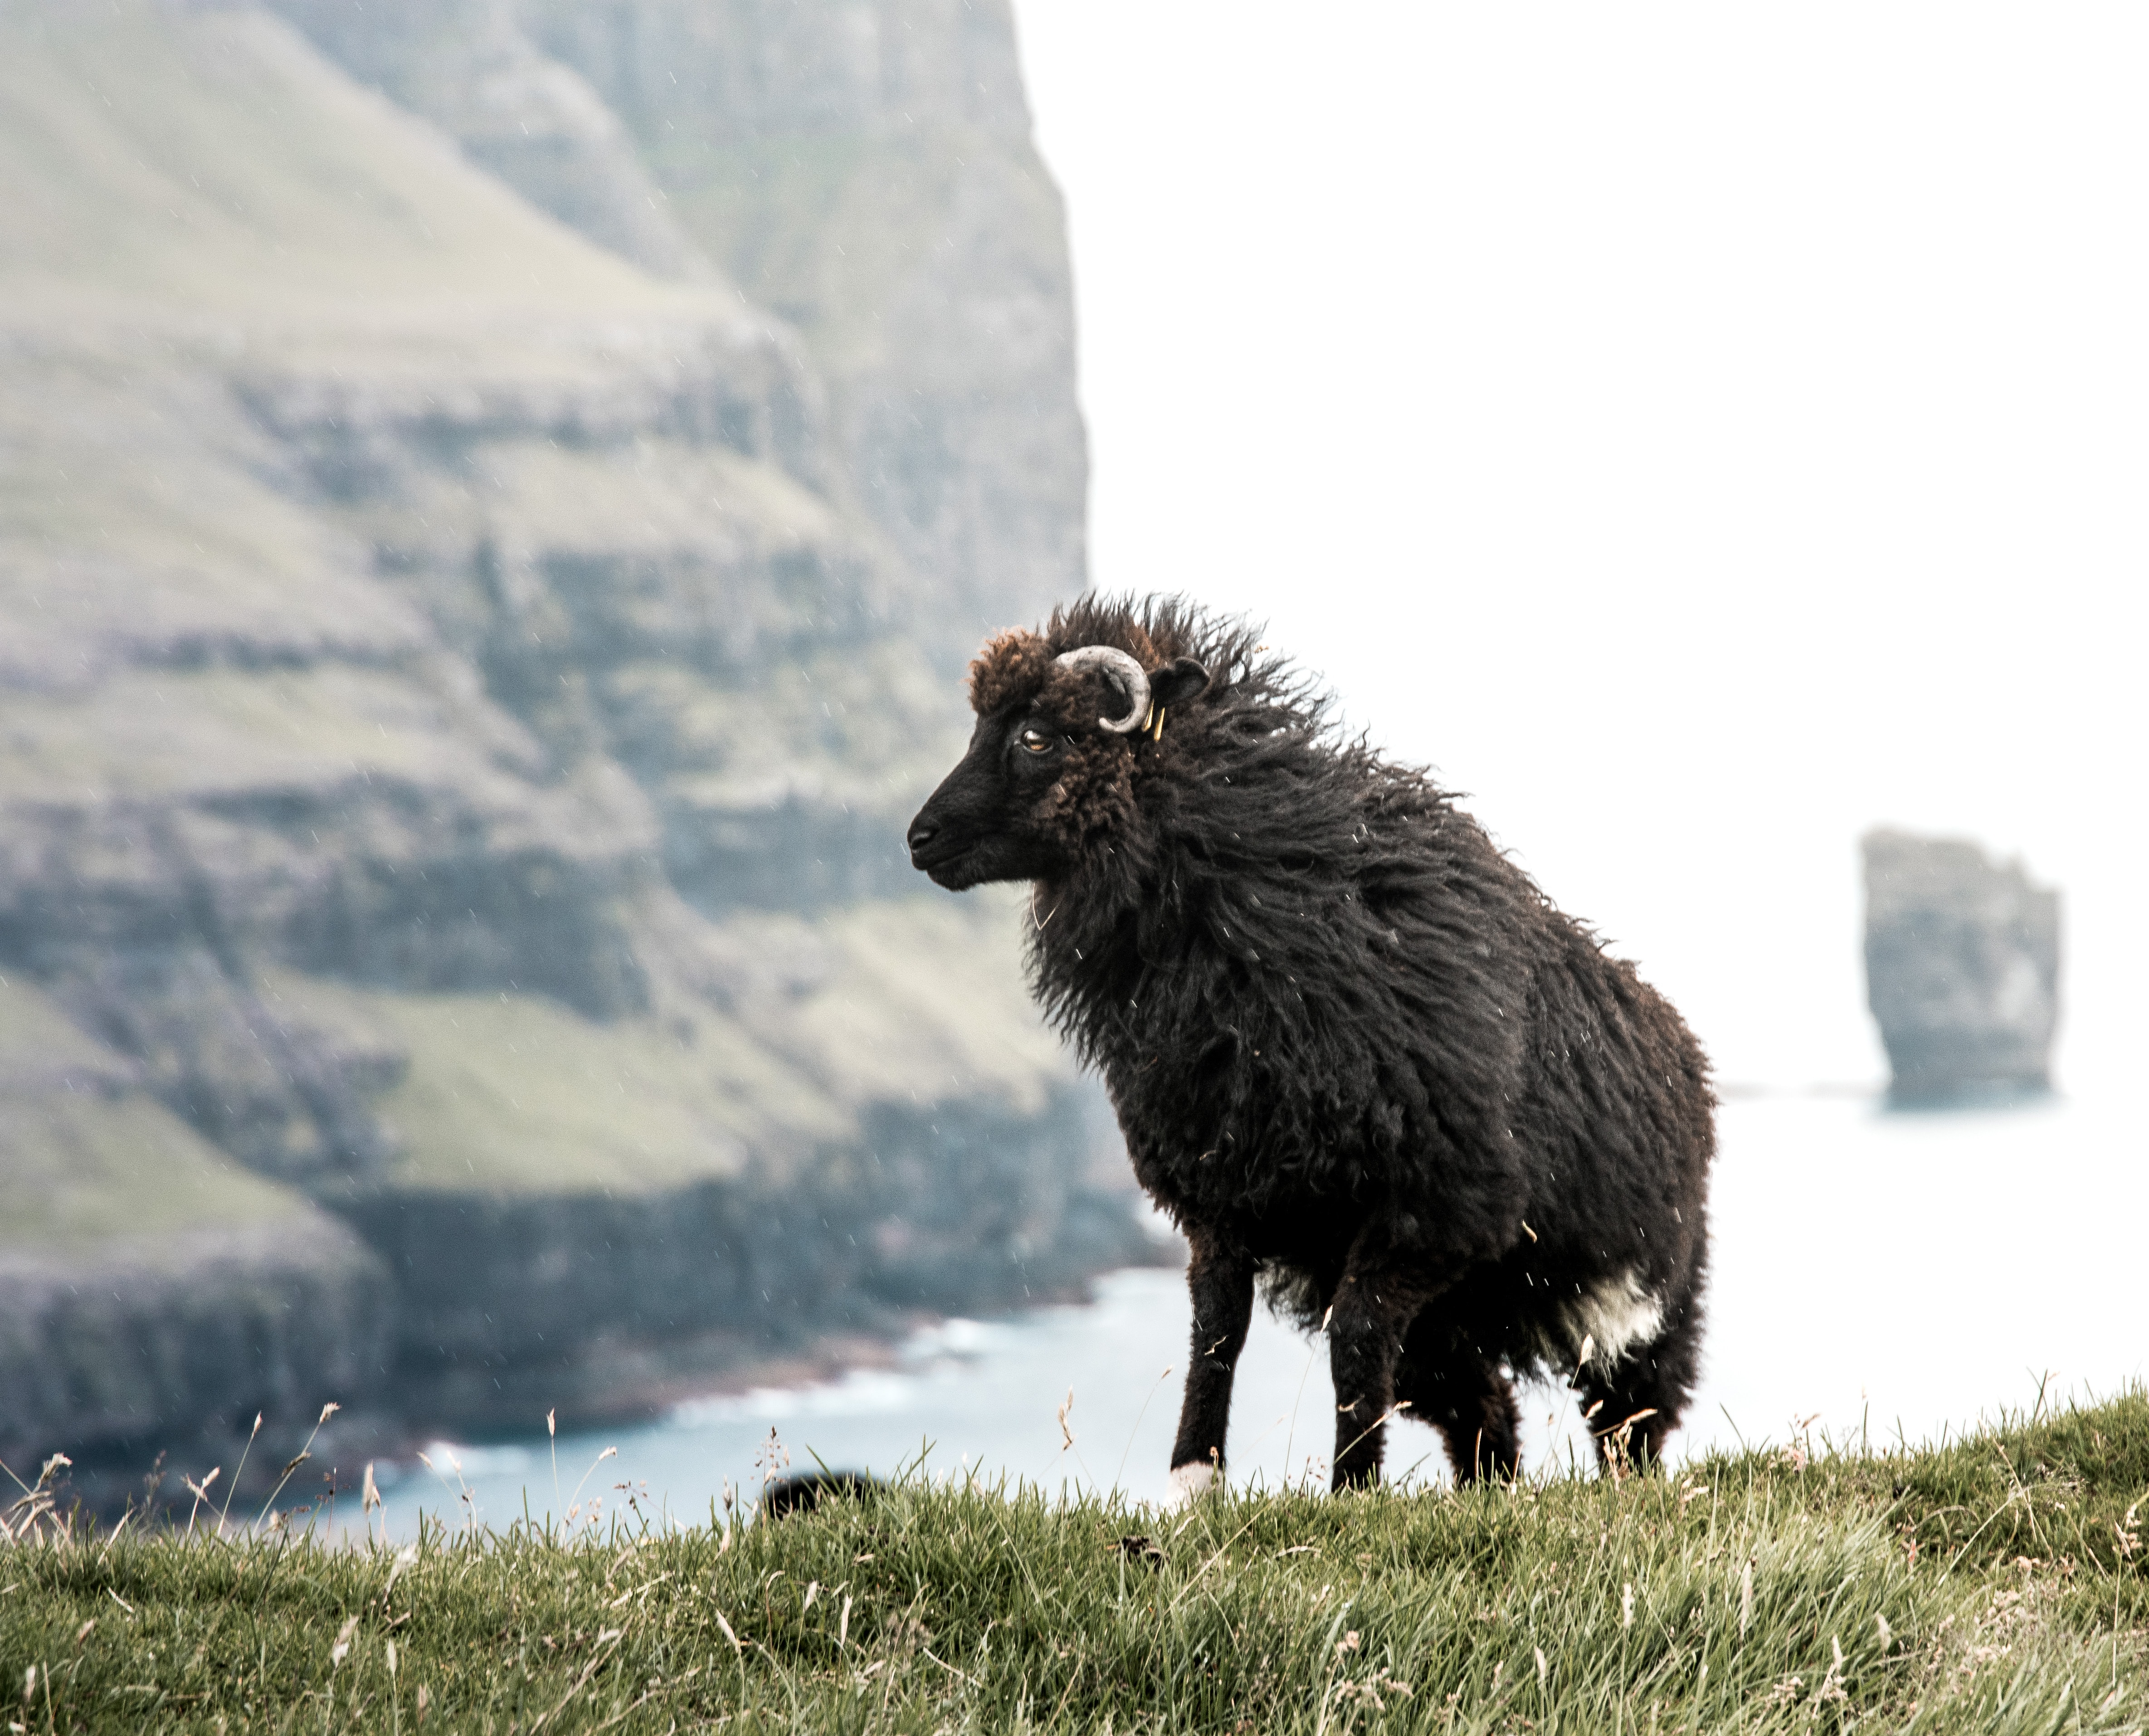 black mountain goat standing on grass field during daytime